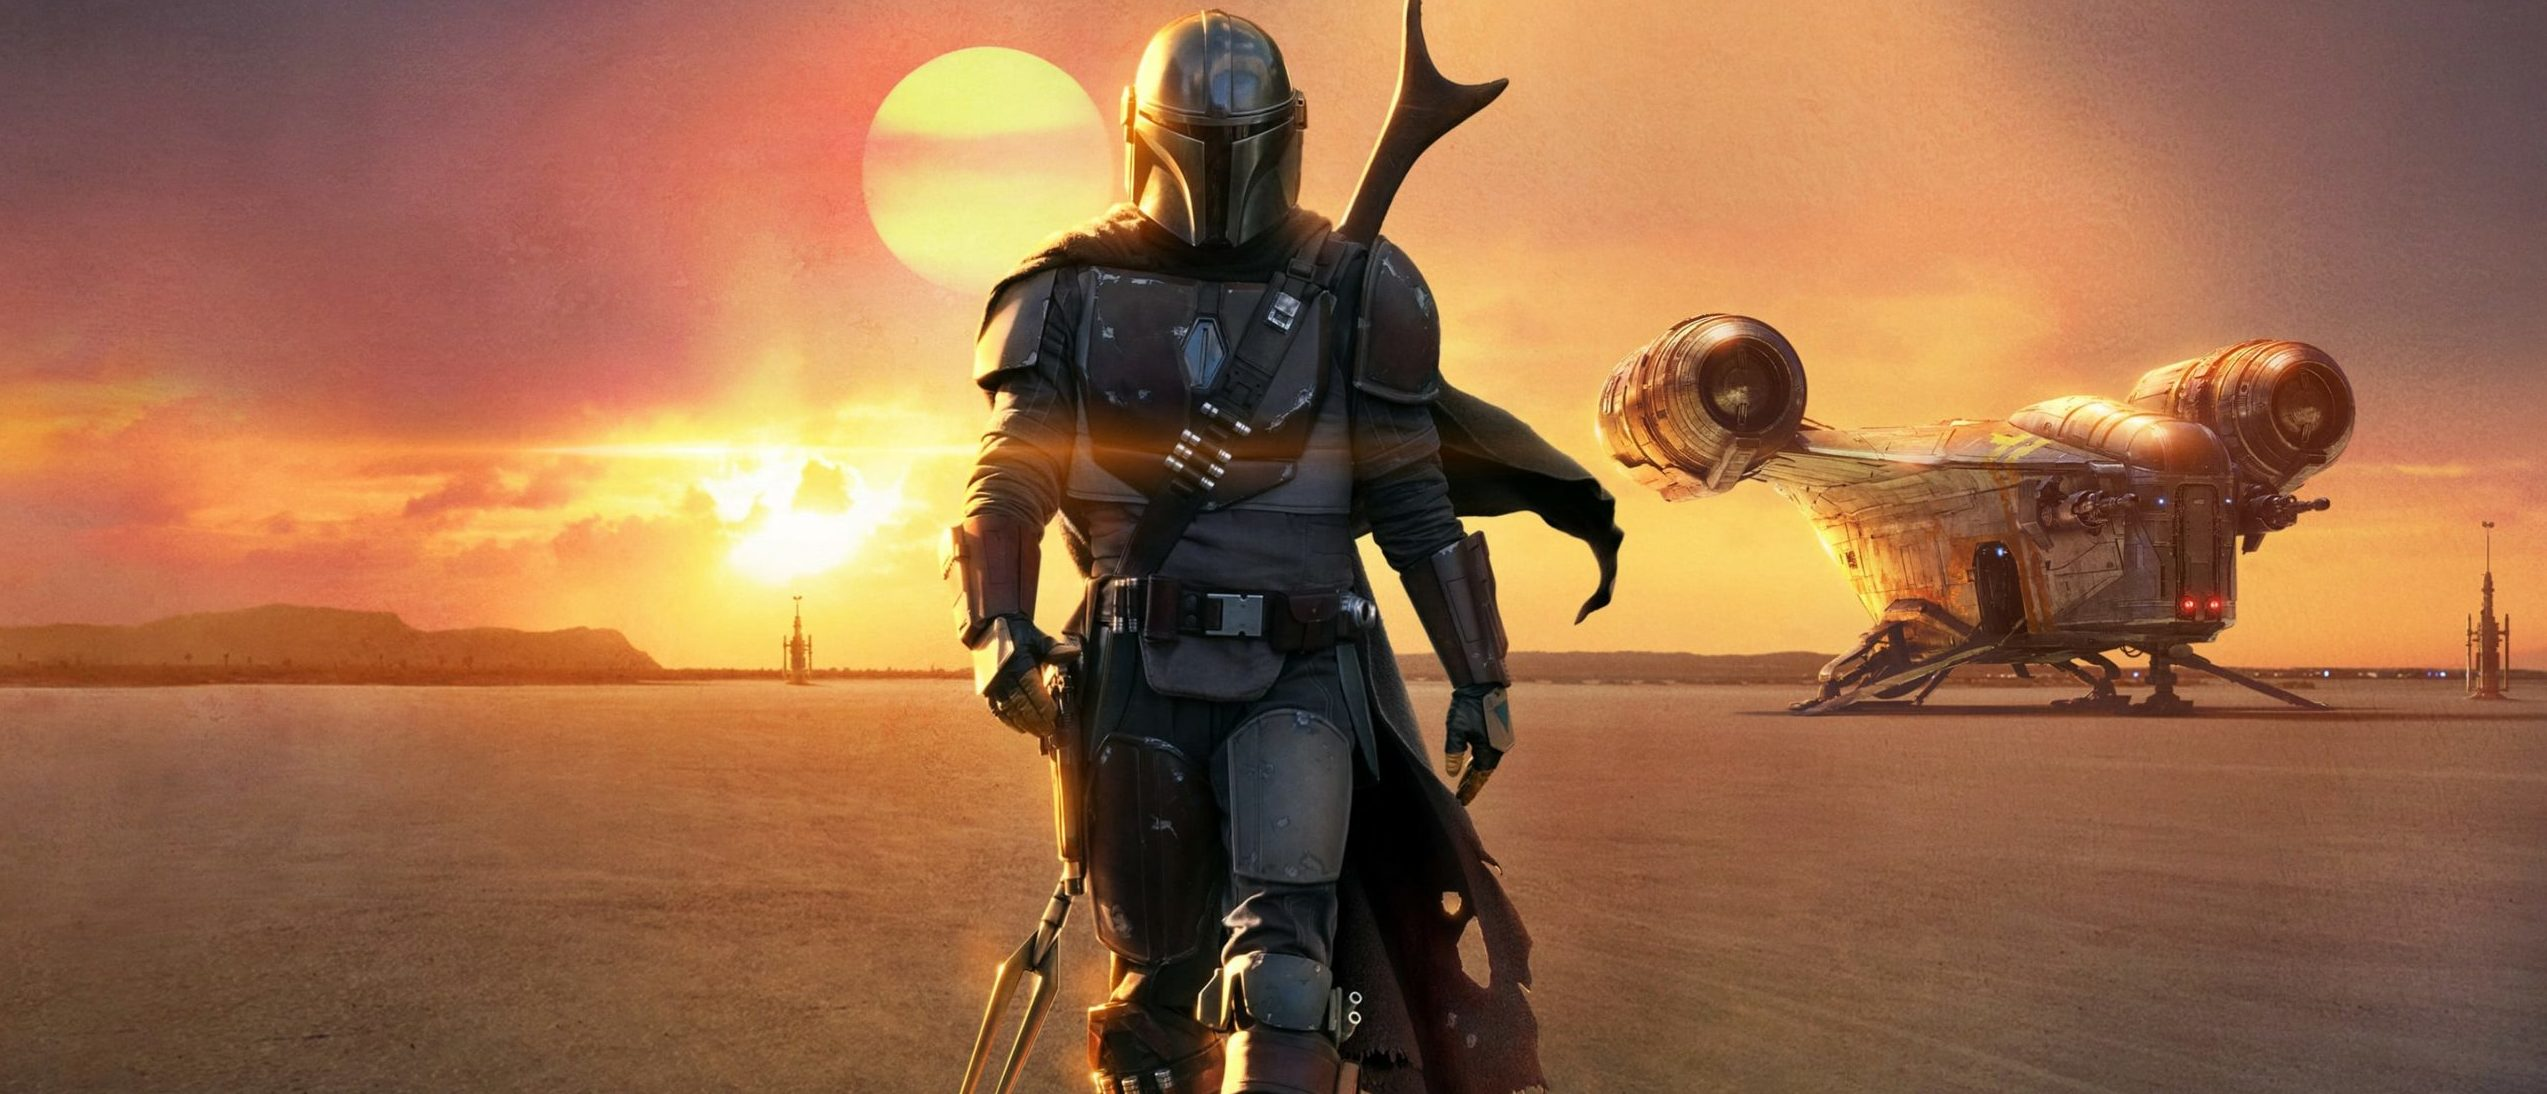 The Mandalorian Season 1 Review Disney Plus Star Wars